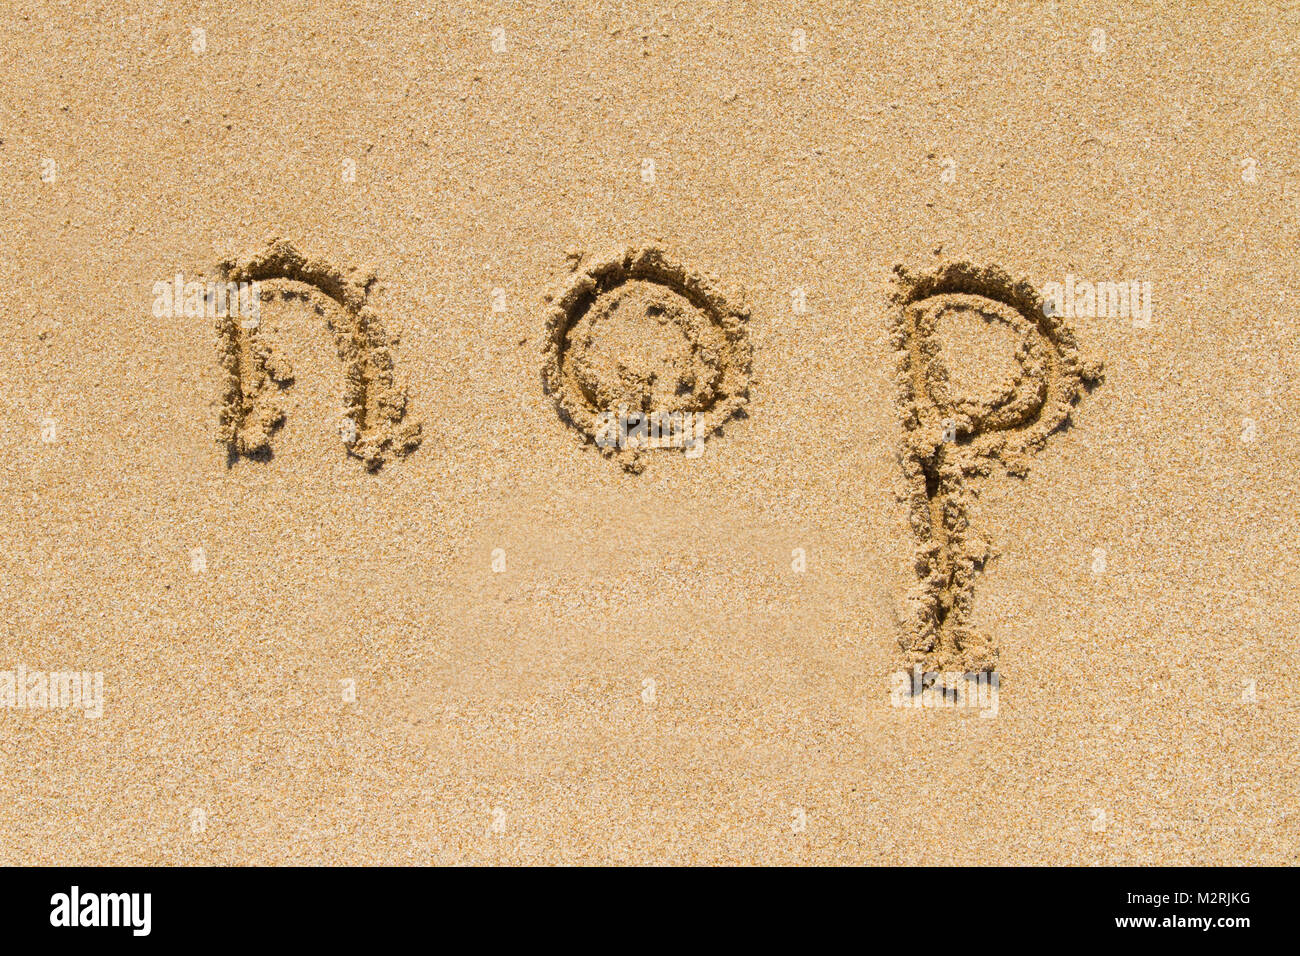 Set of nop letters of alphabet written on sand with lower case. - Stock Image